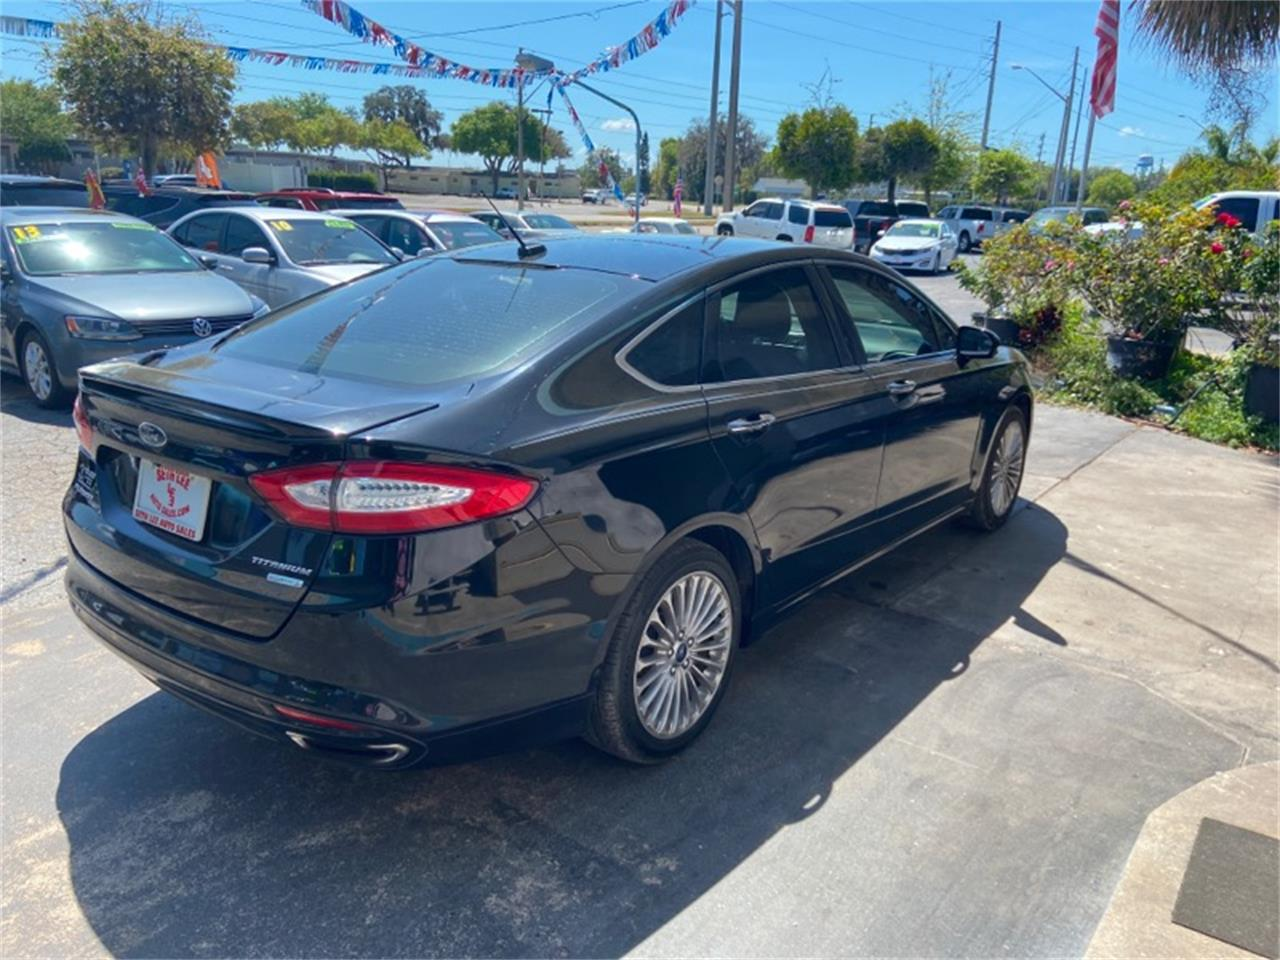 2016 Ford Fusion (CC-1333243) for sale in Tavares, Florida